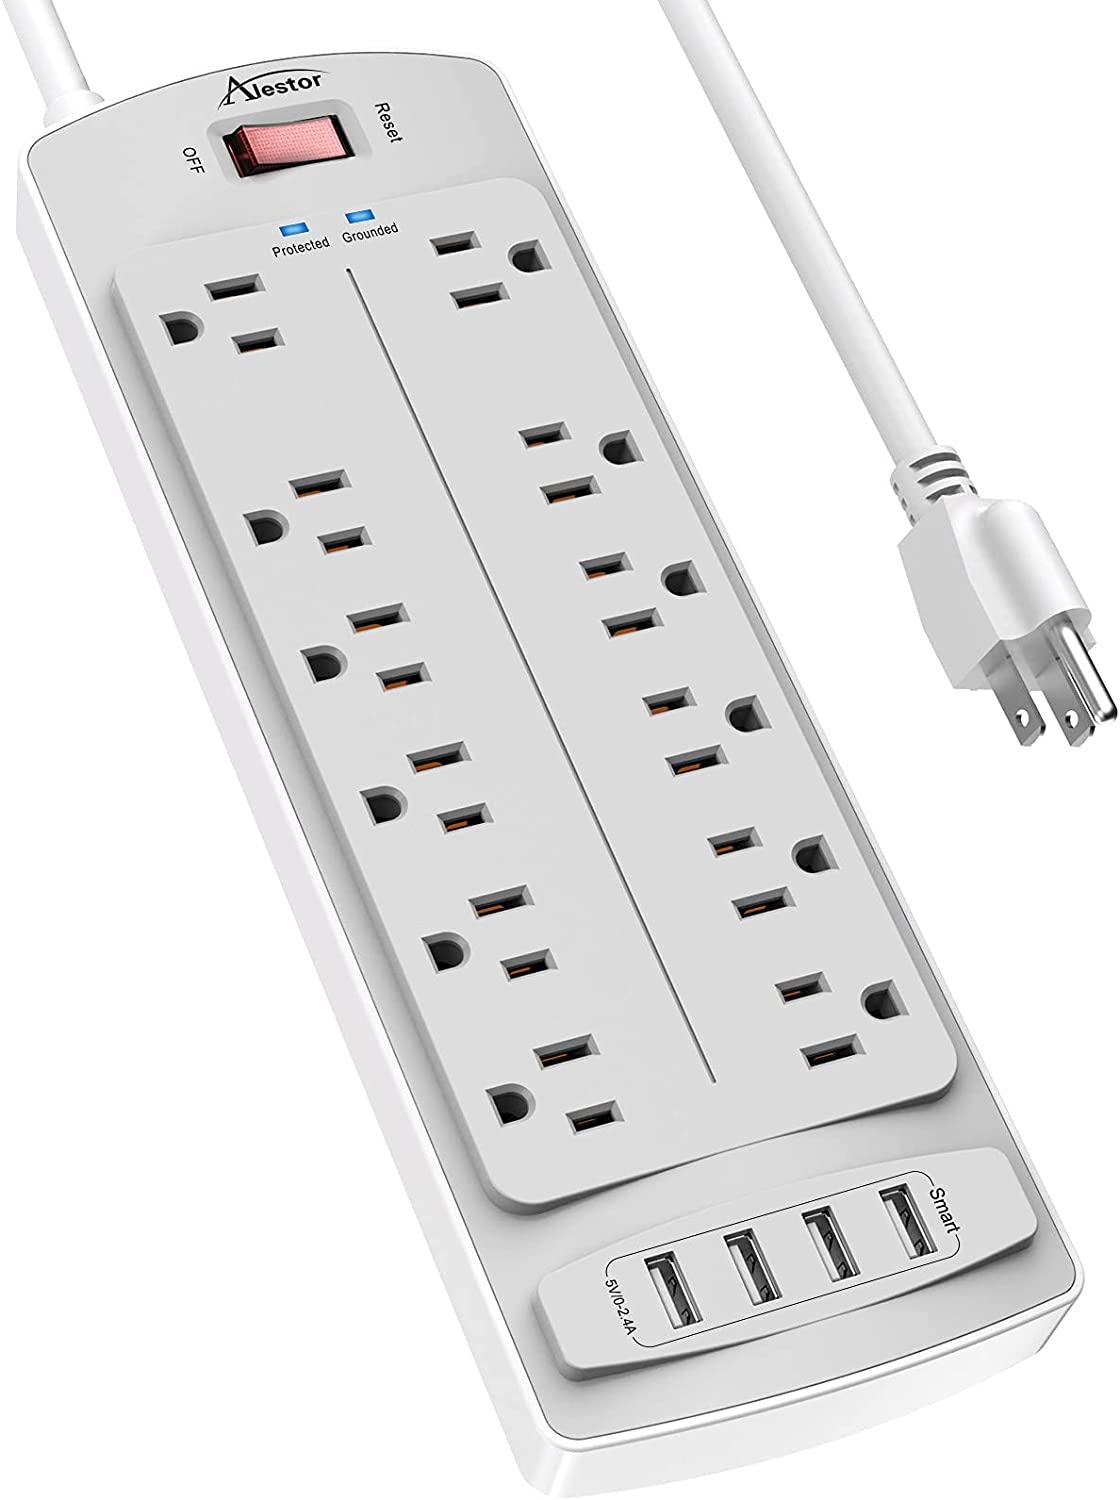 Power Strip ,ALESTOR Surge Protector with 12 Outlets and 4 USB Ports, 6 Feet Extension Cord (1875W/15A) for for Home, Office, Dorm Essentials, 2700 Joules, ETL Listed (White/Grey)